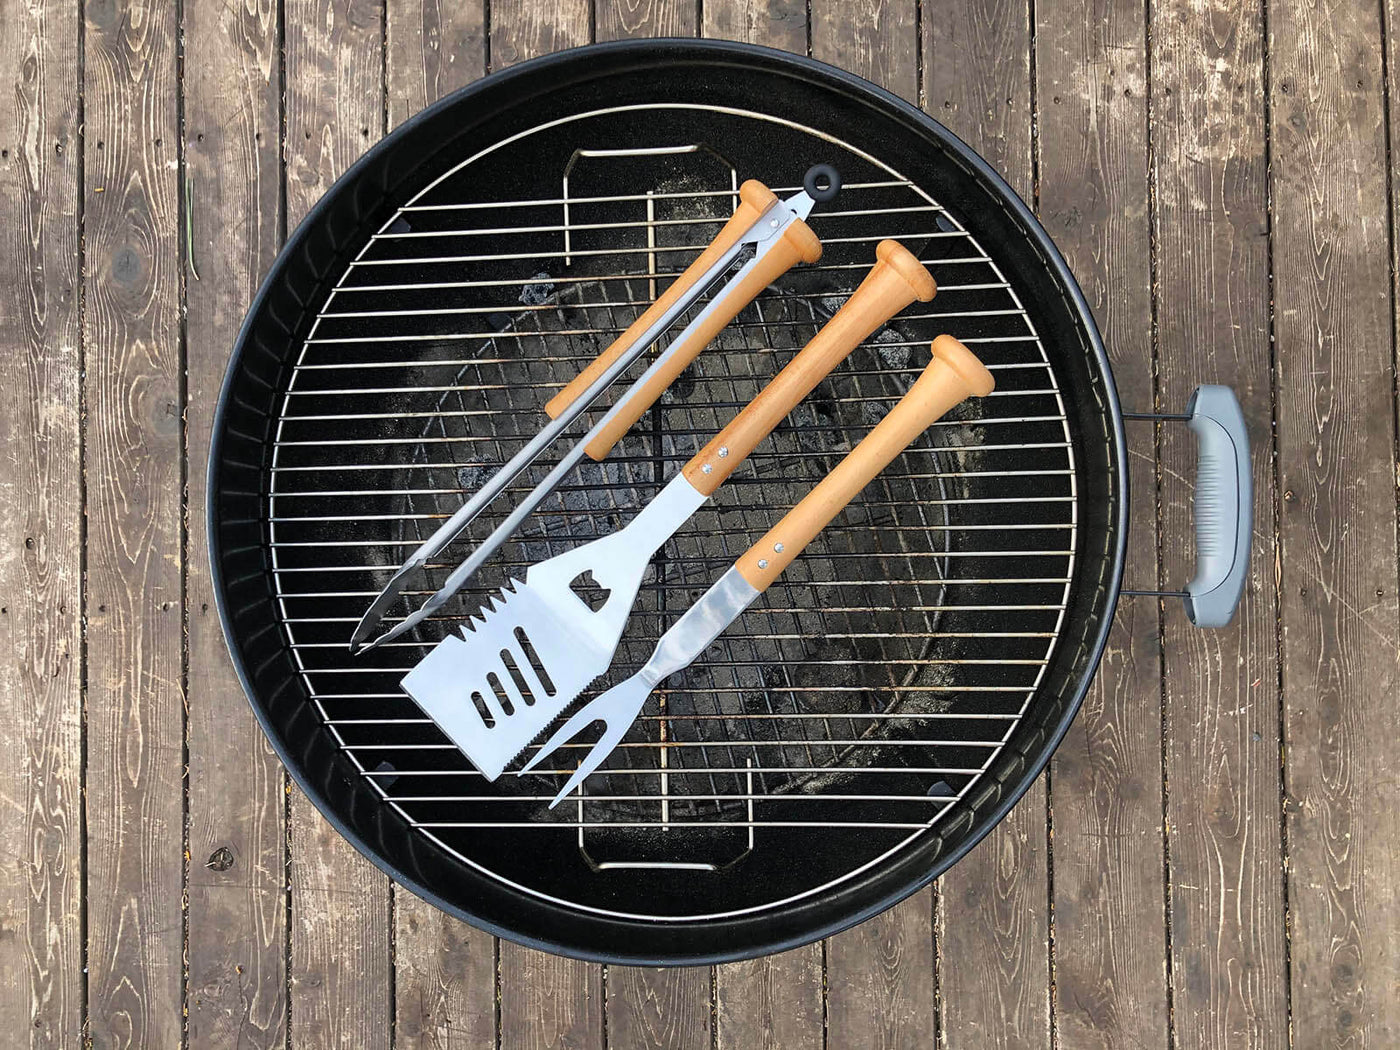 Baseball BBQ grill tools set made with wood baseball bat handles, available with custom personalization. Perfect gift for baseball fans.